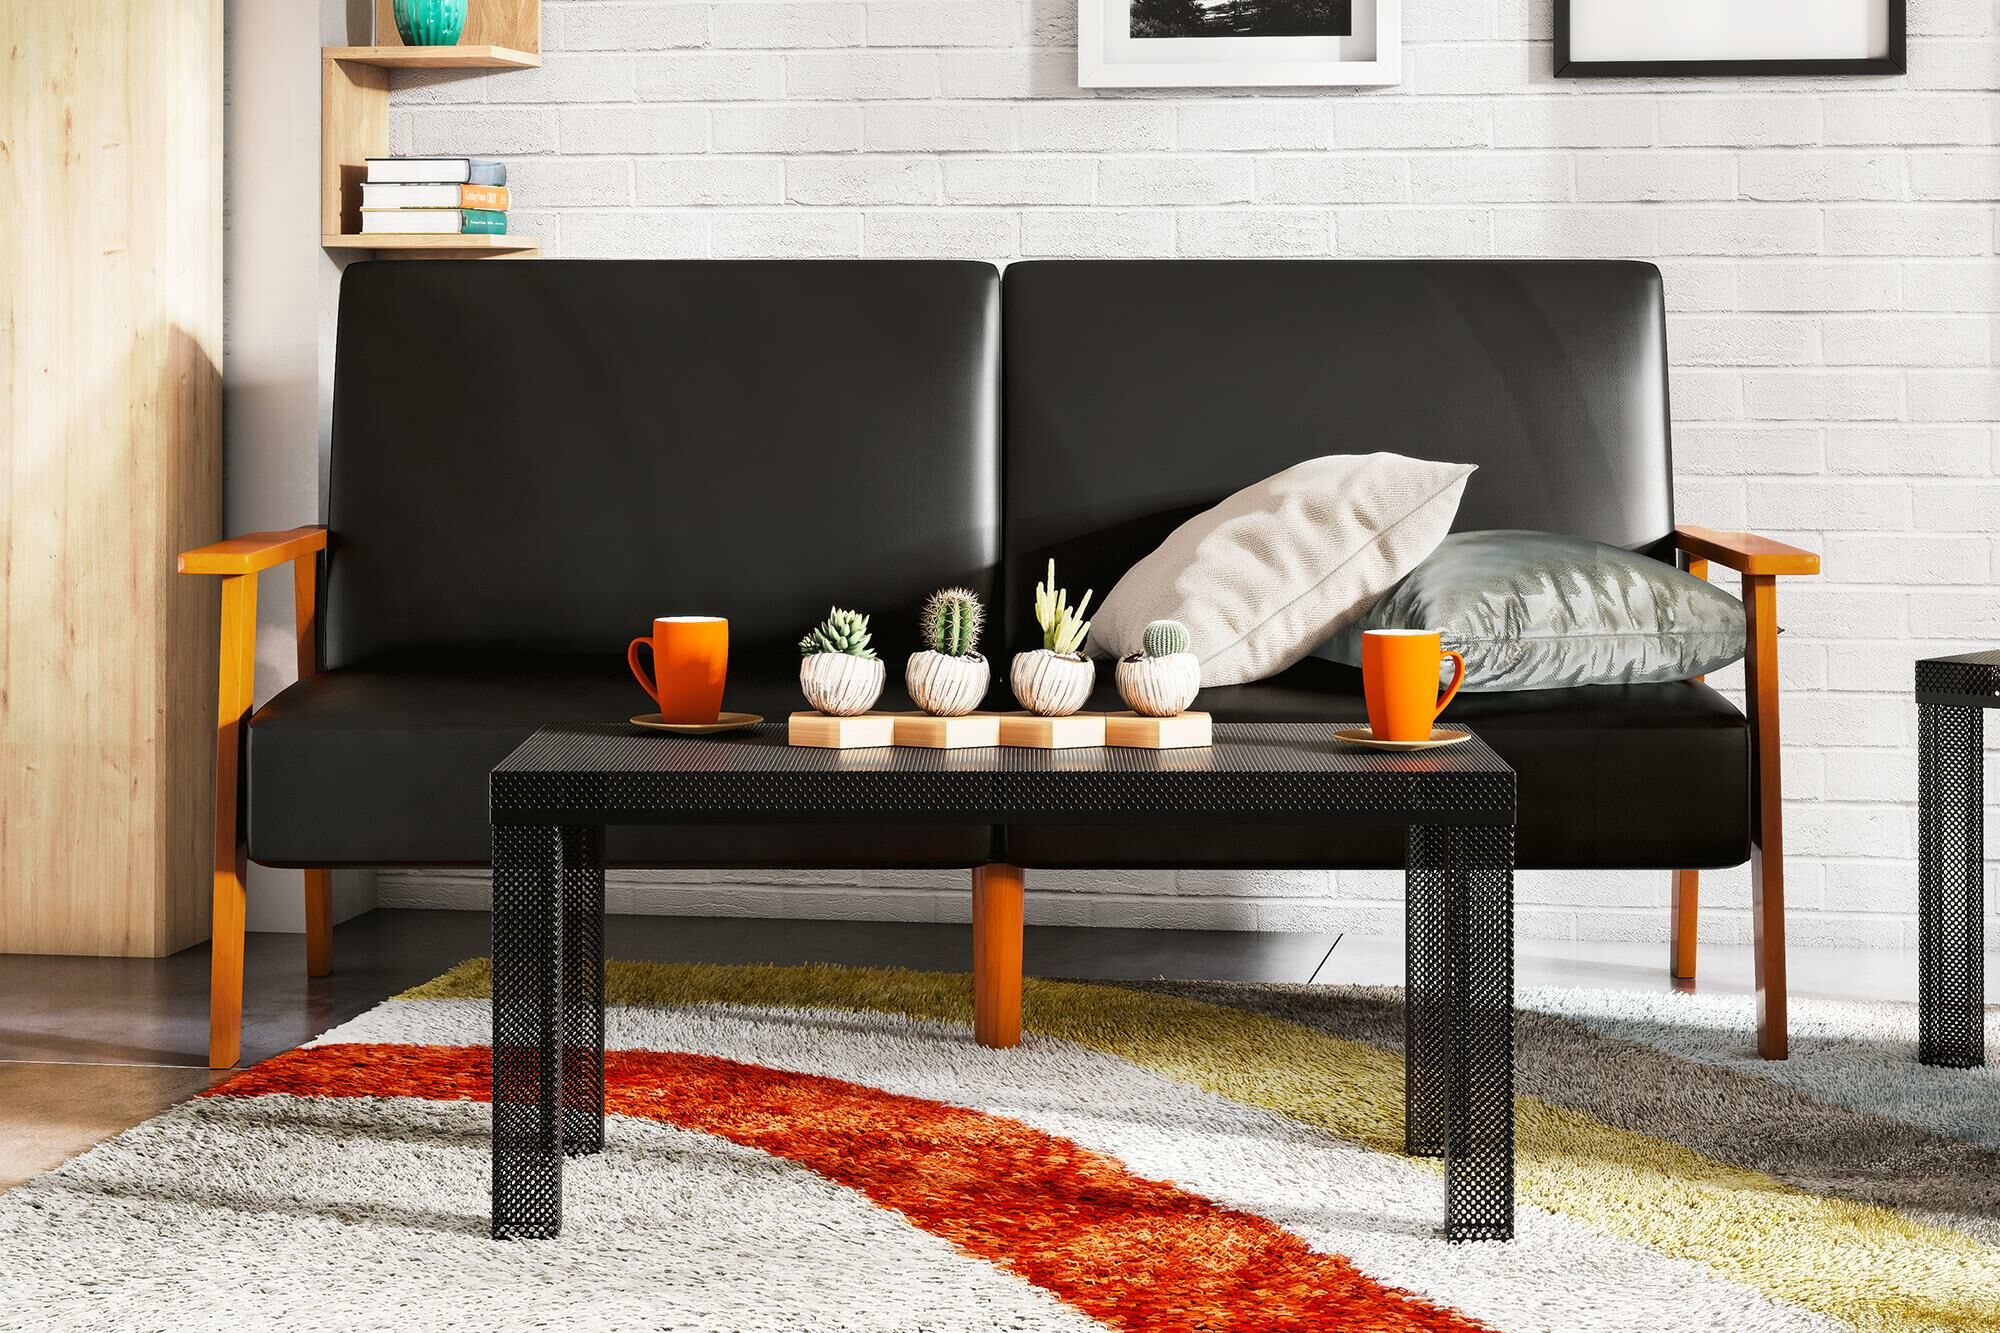 Iconic Coffee Table Color: Black